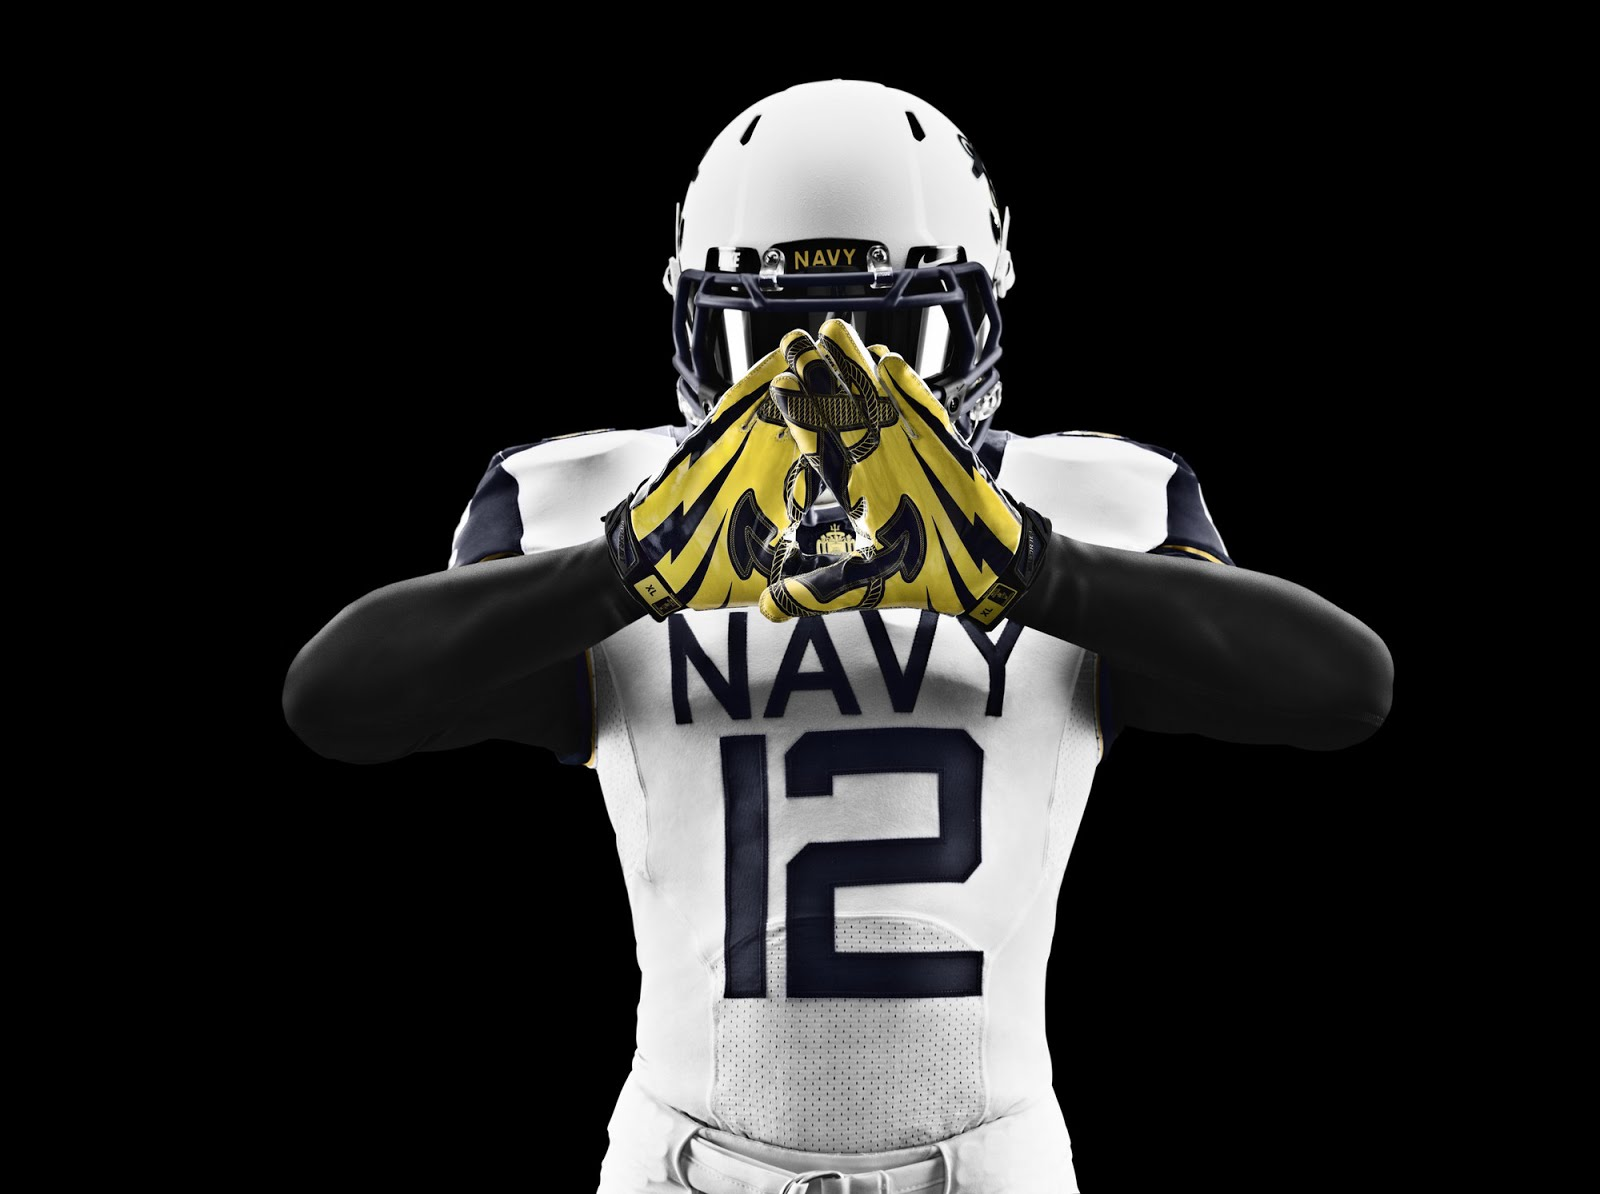 Super Punch Awesome new Army and Navy football uniforms by Nike 1600x1194